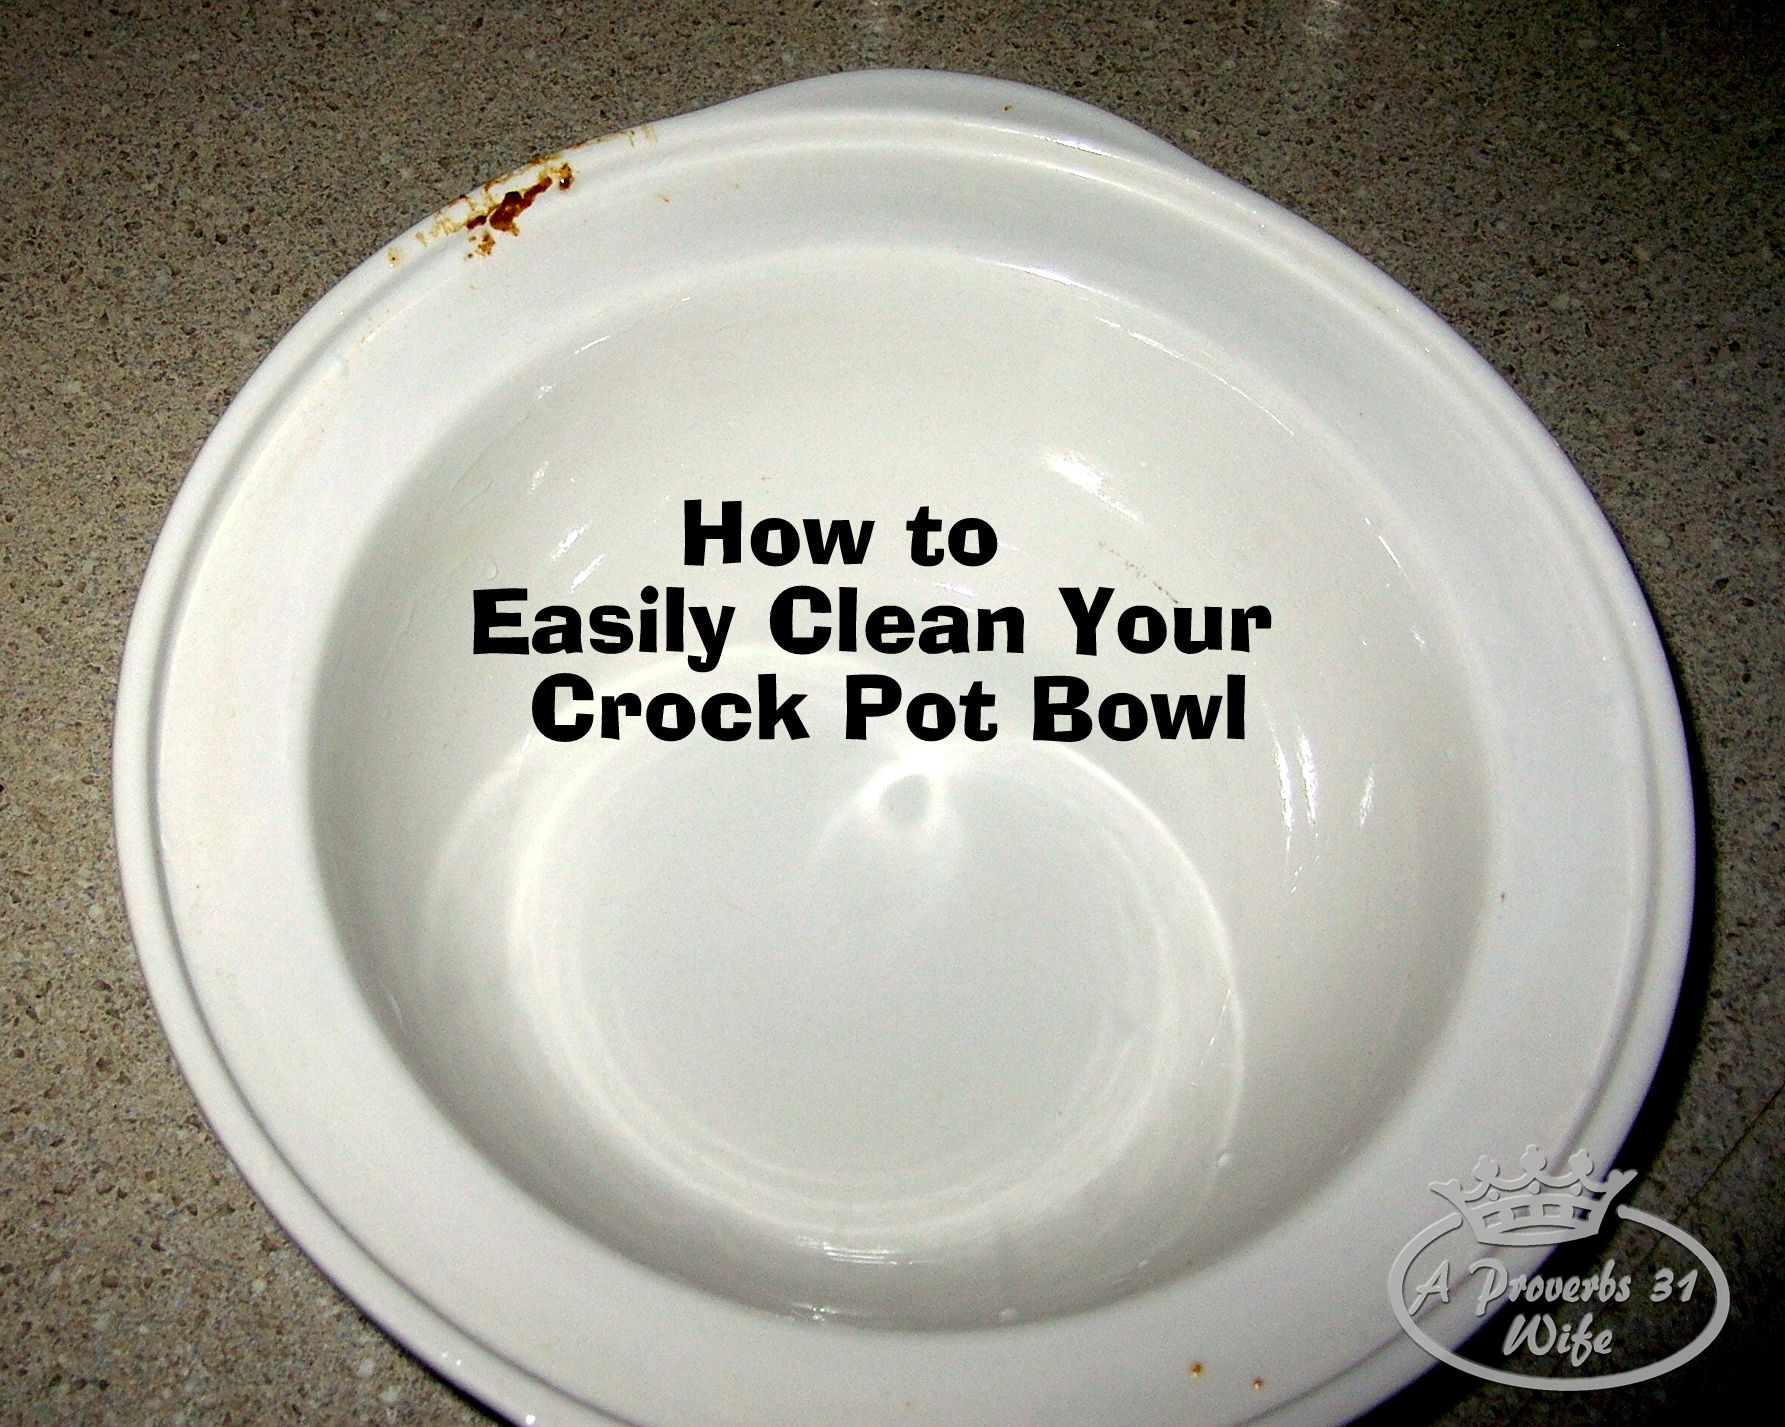 Easy way to clean my crock pot